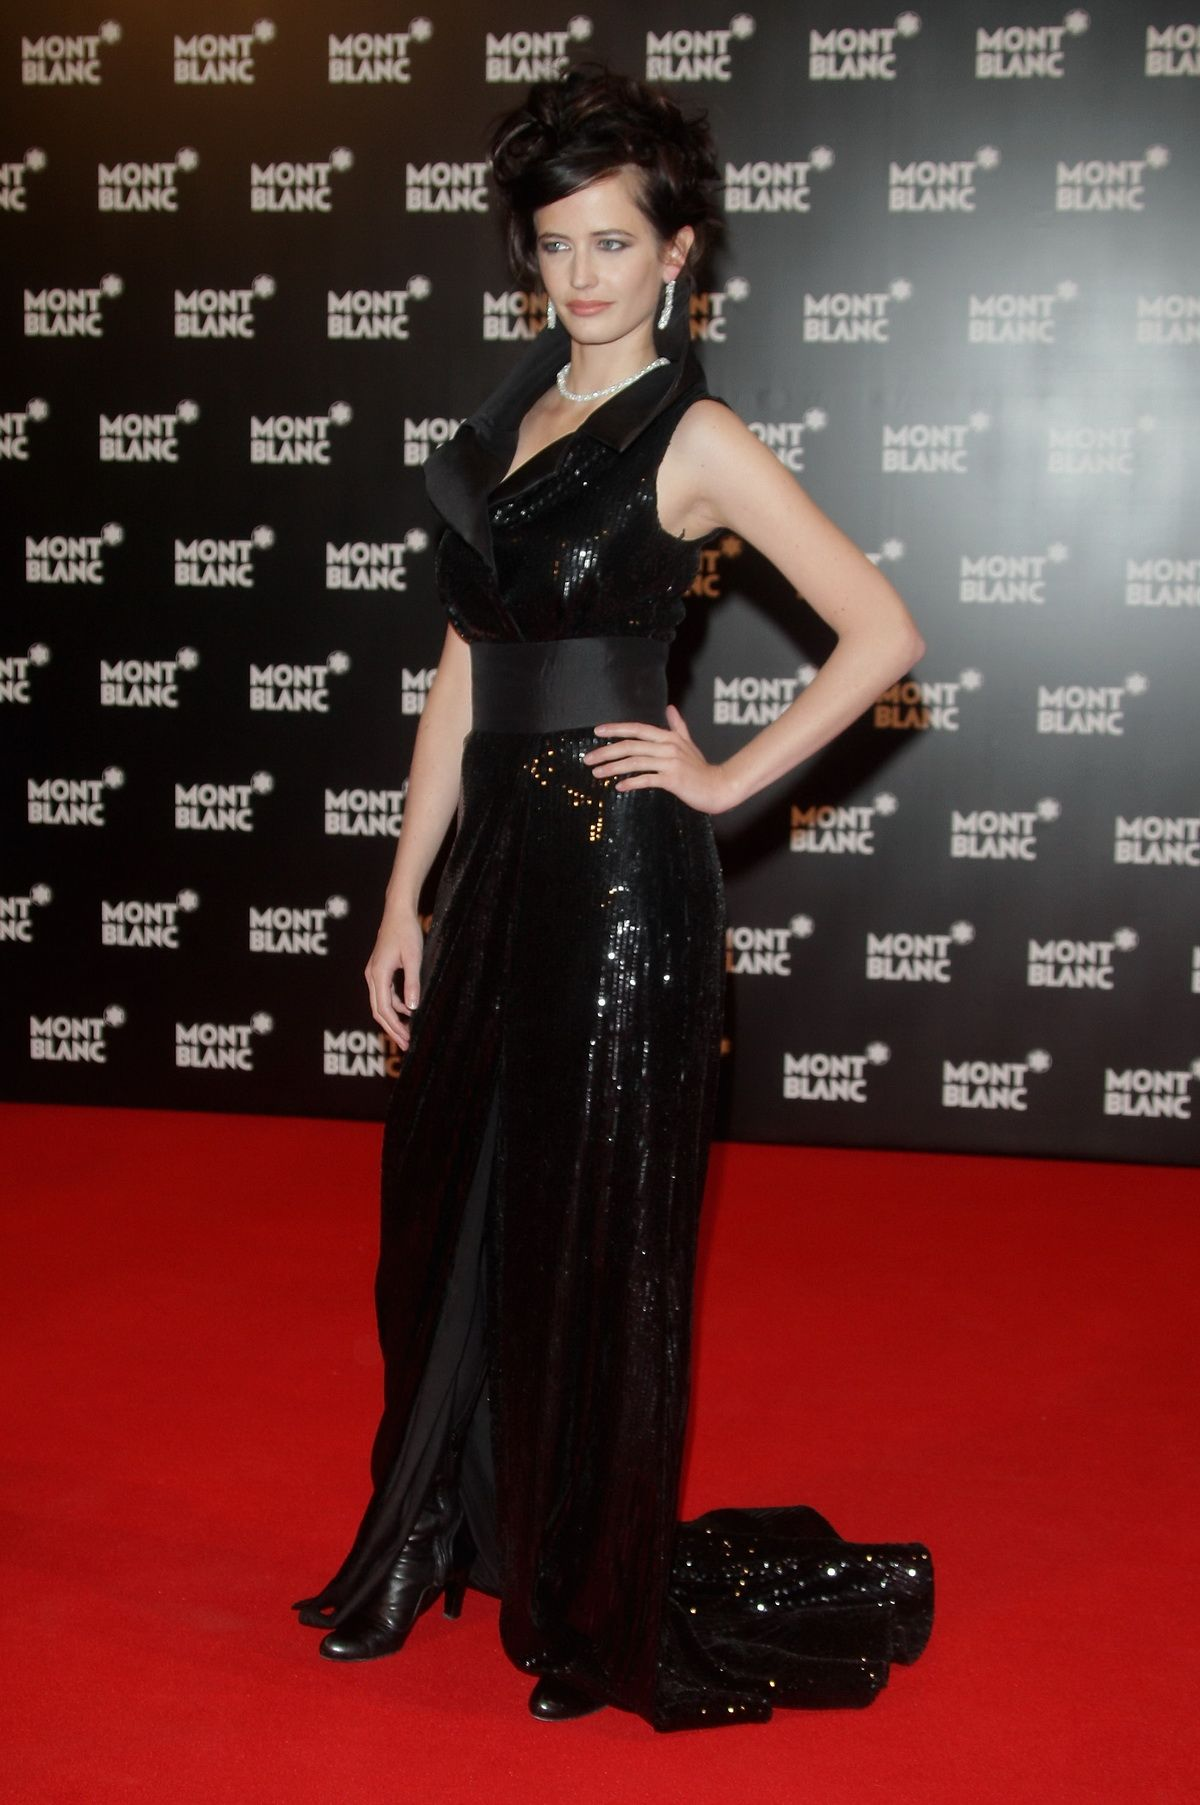 Roter Teppich Vip Red Carpet Eva Green Montblanc Vip Charity Gala At The Monte Carlo Sporting